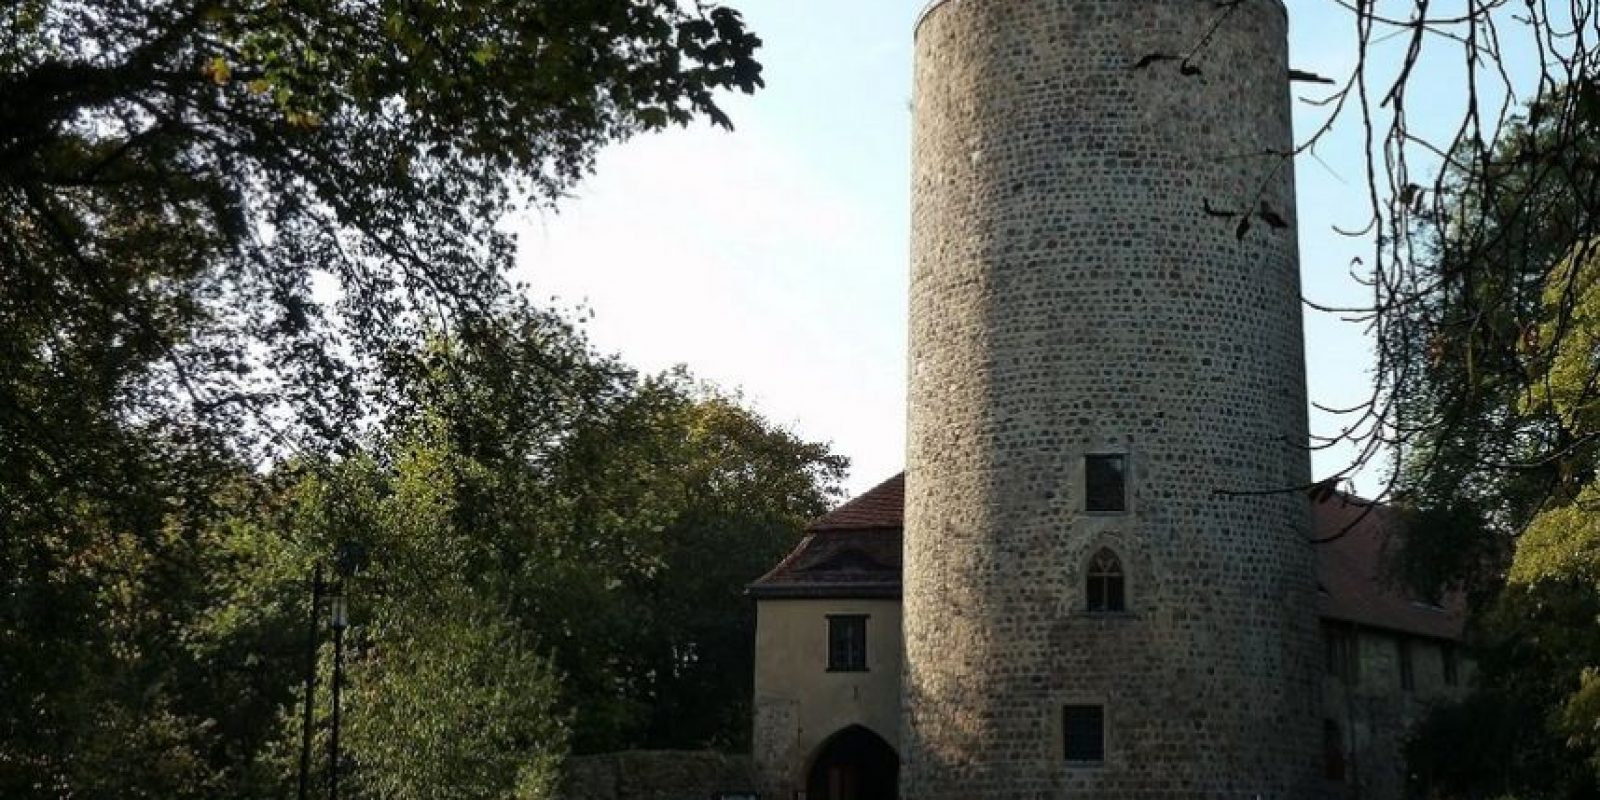 10. Burg Rabenstein en Flaming, Alemania. Foto: panoramio